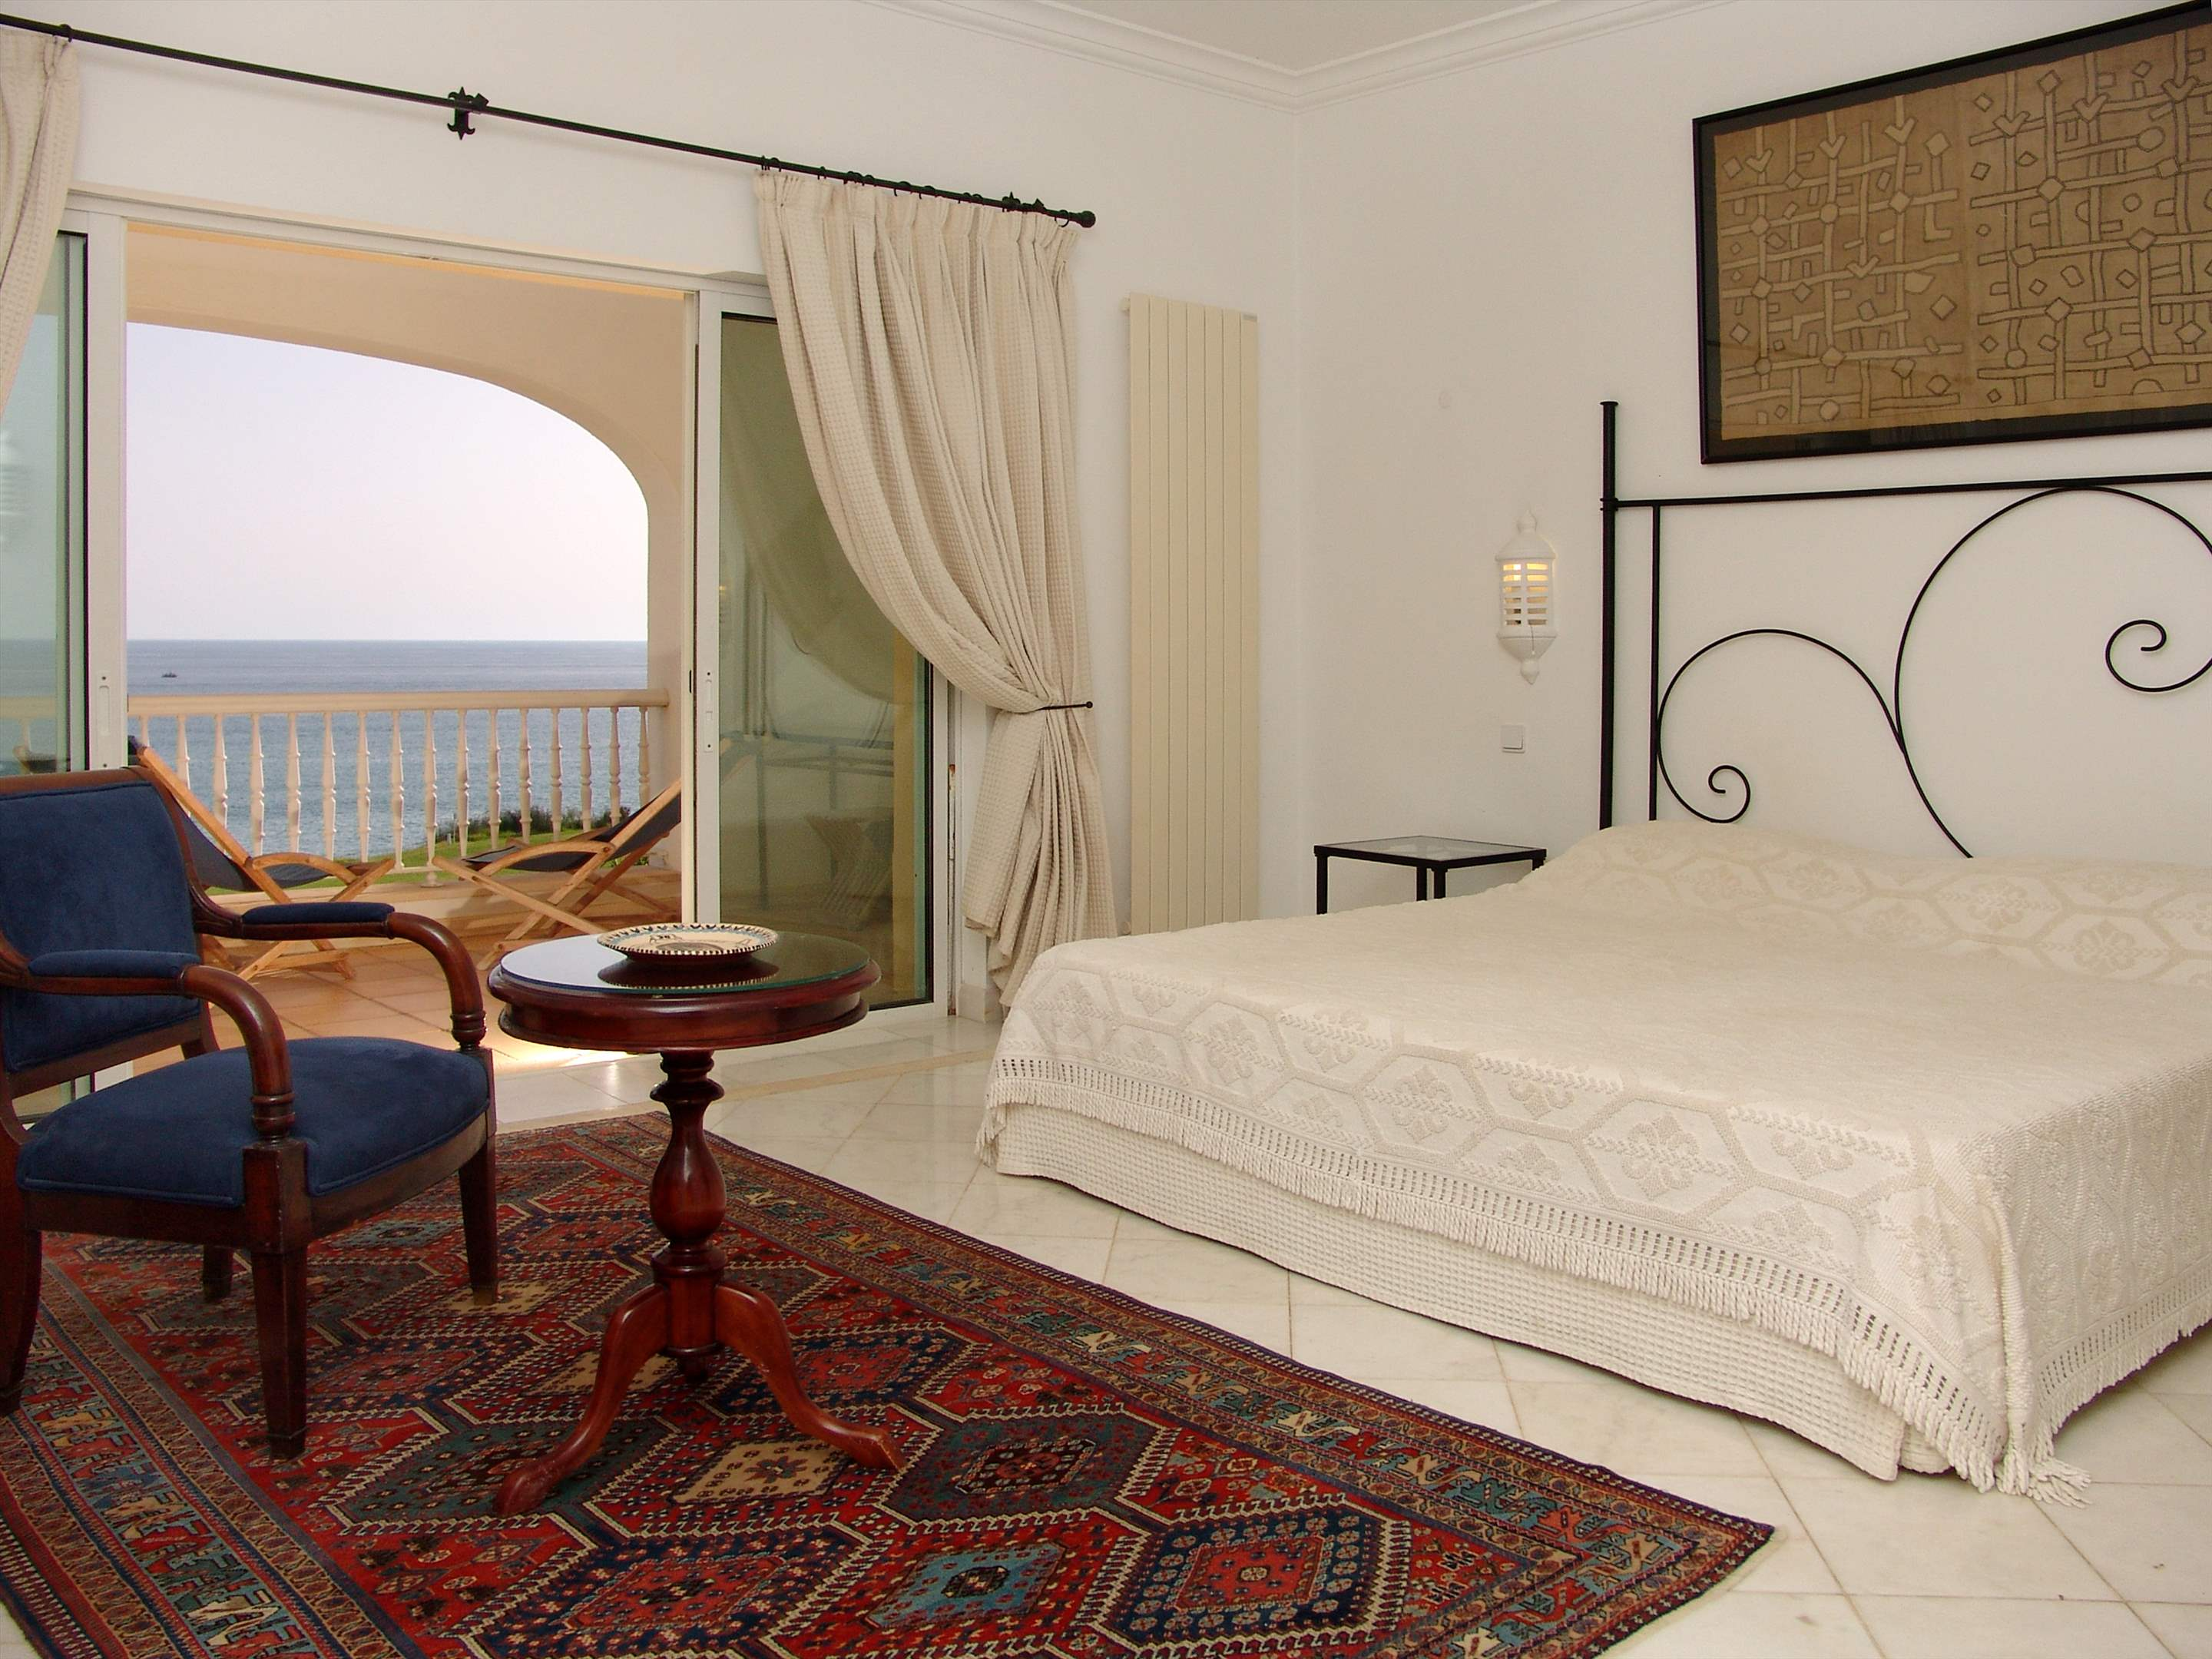 Villas Louisa, 3 bedroom, 3 bedroom villa in Vale do Lobo, Algarve Photo #15